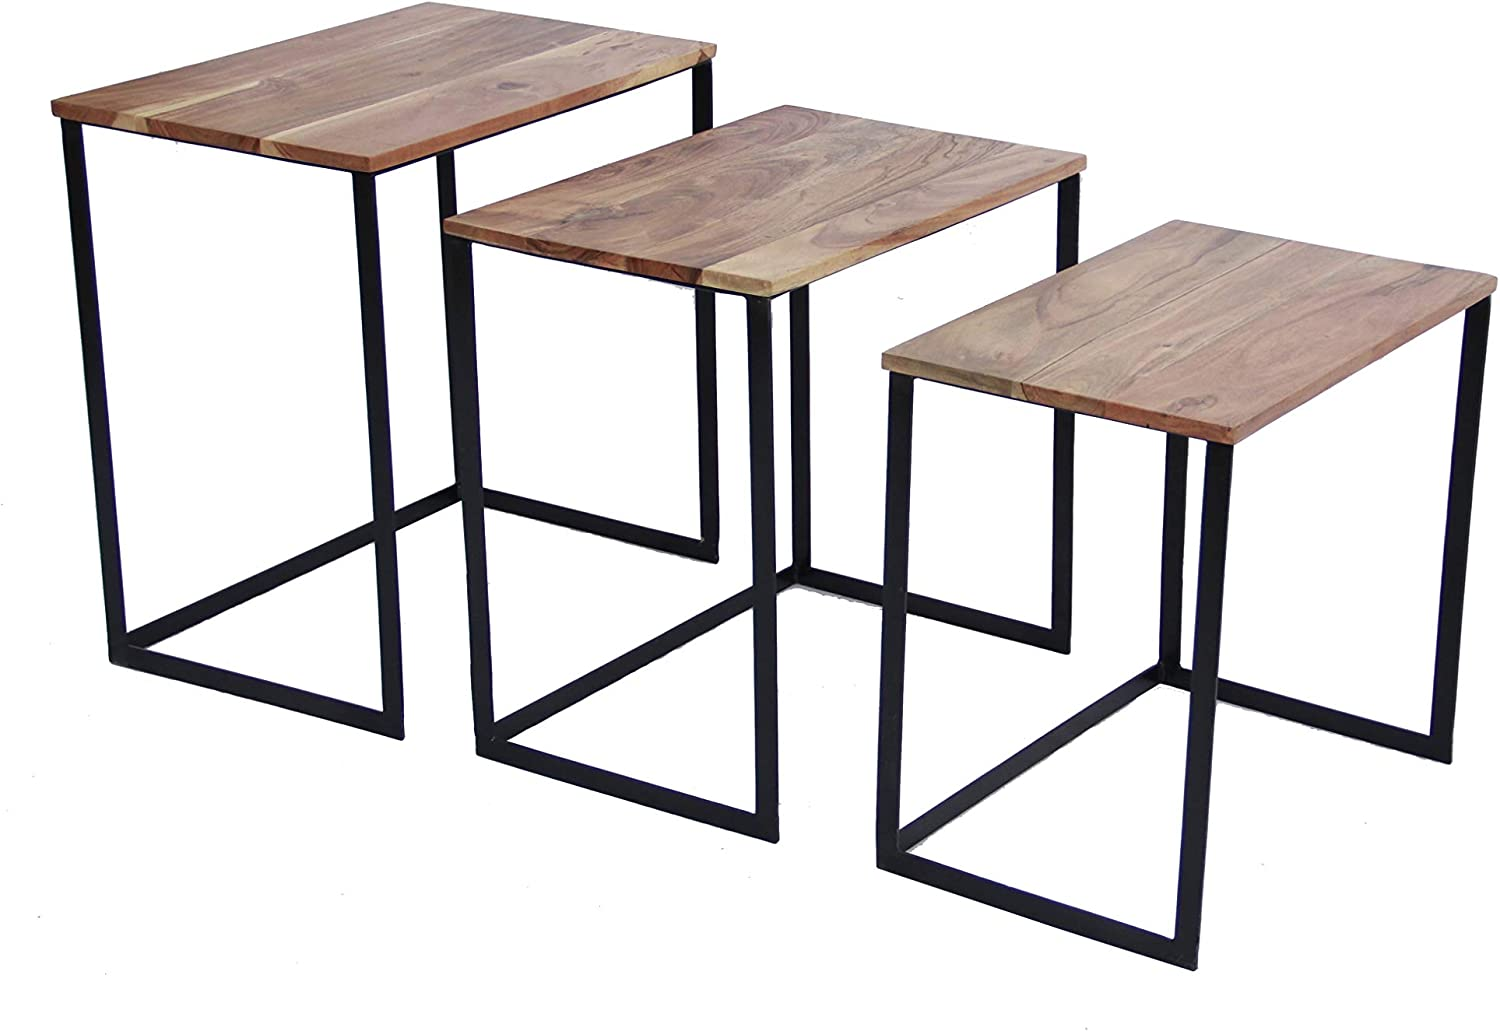 Set of 3 Classic Iron /& Wood Nesting Table Brown